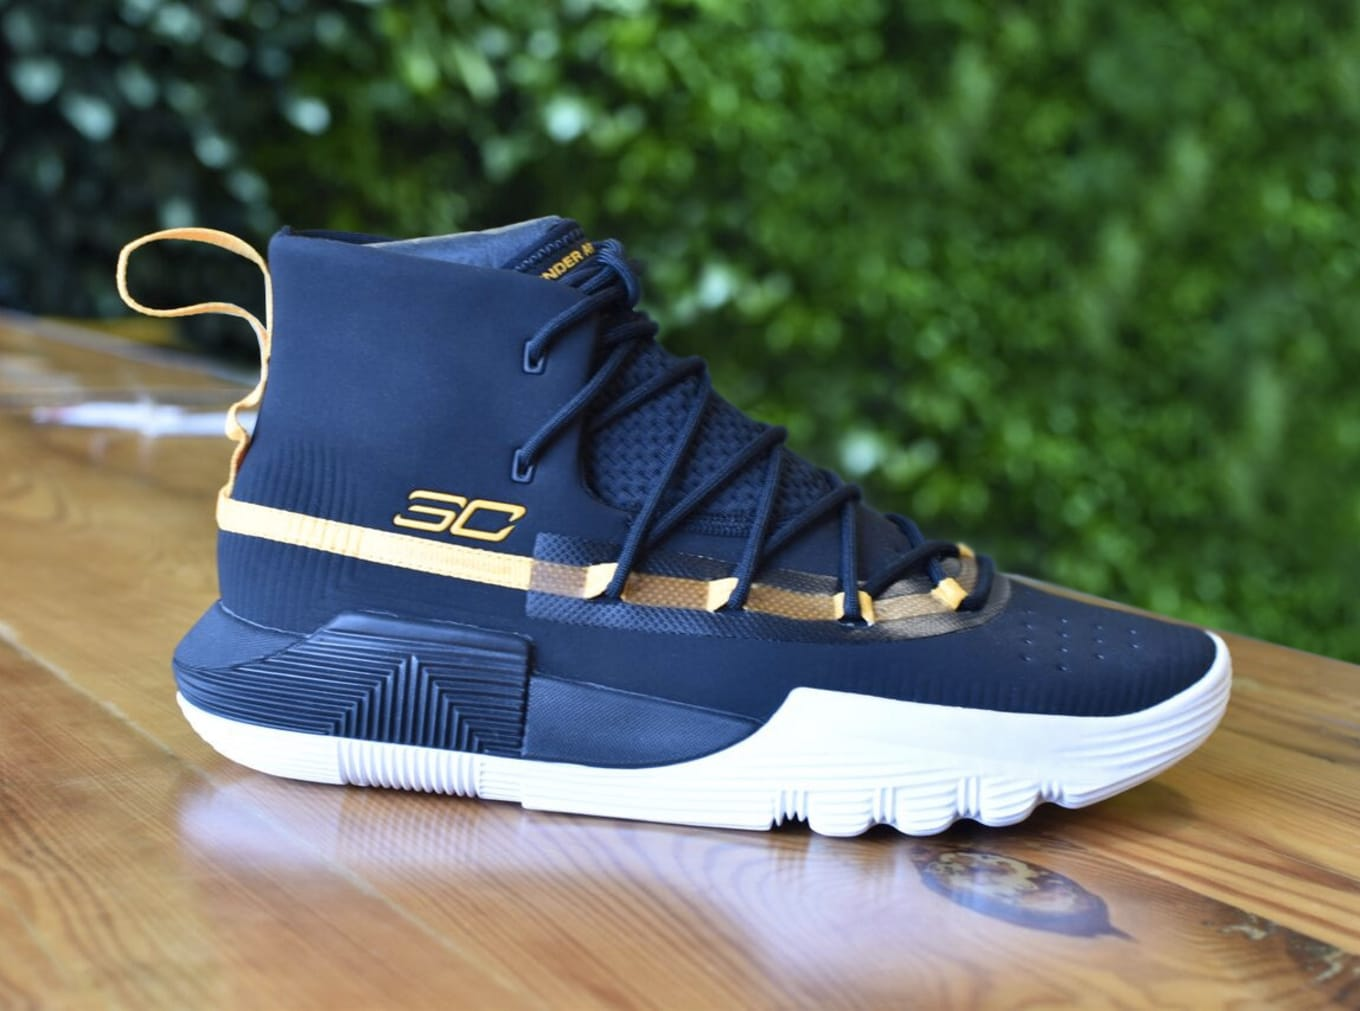 7670444ae023 Under Armour Curry 3Zer0 II 2 Release Date